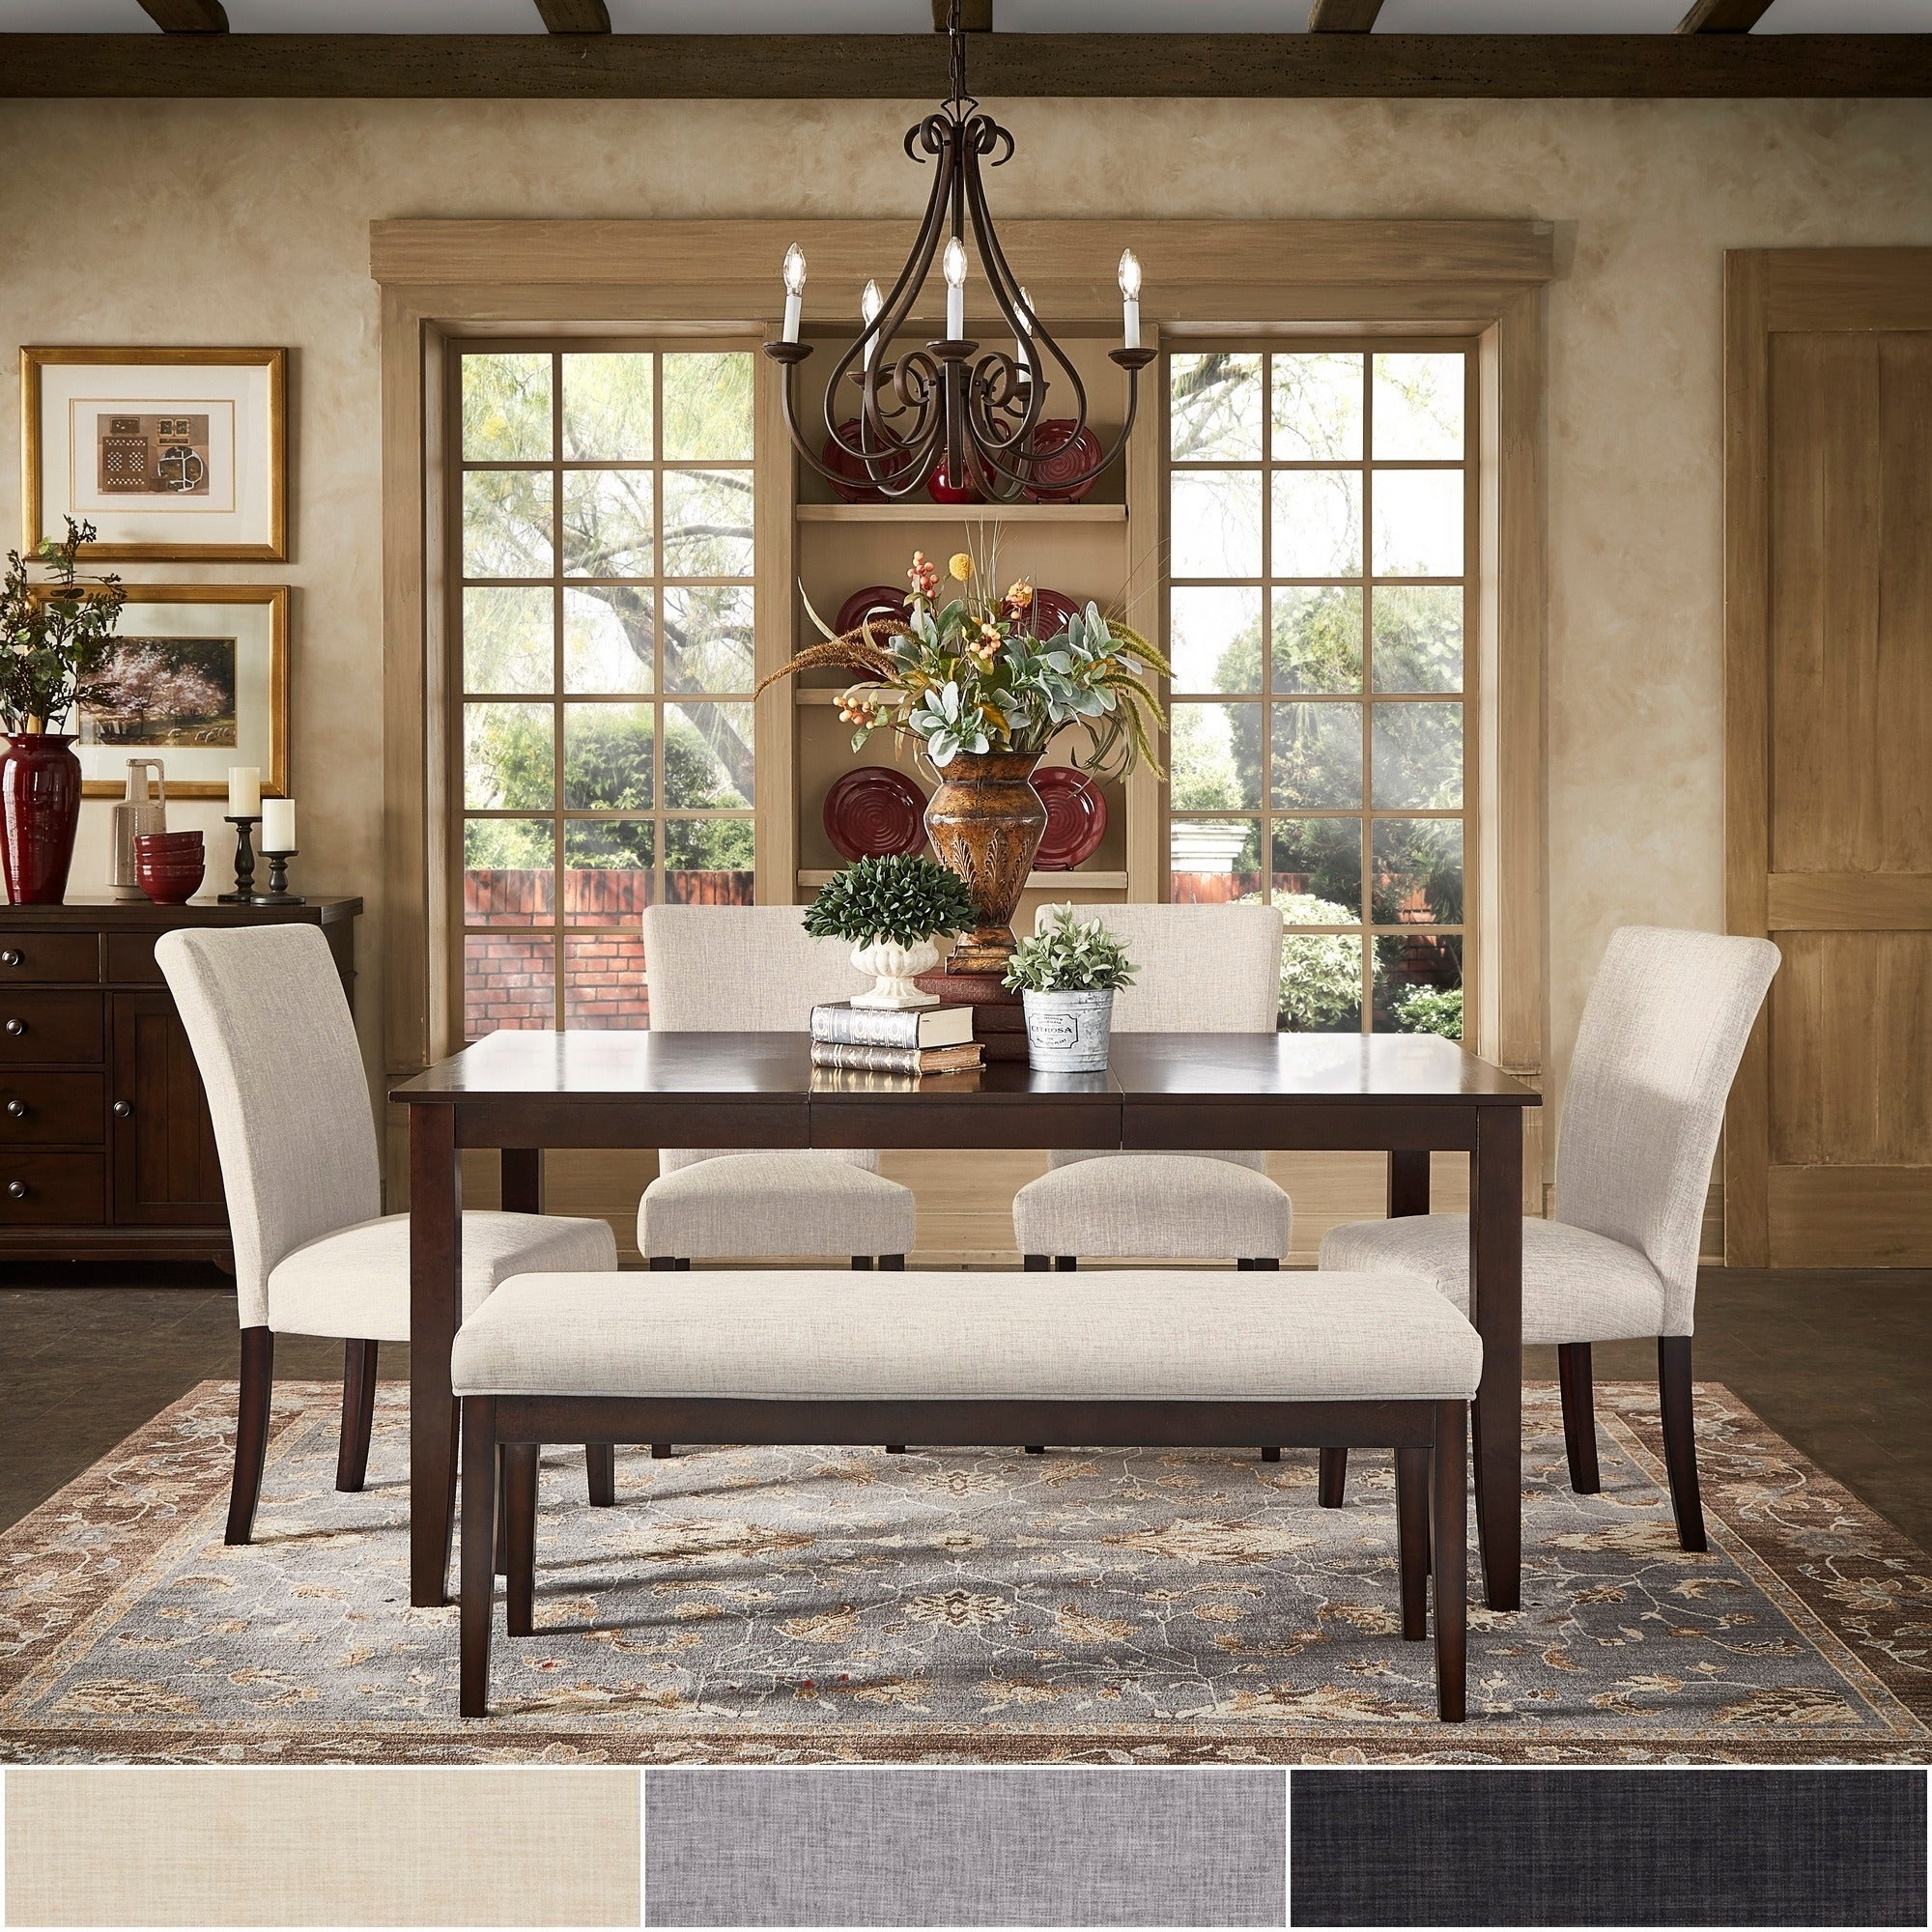 Buy 7 Piece Sets Kitchen & Dining Room Sets Online At Overstock Inside Most Current Autberry 5 Piece Dining Sets (Image 6 of 20)